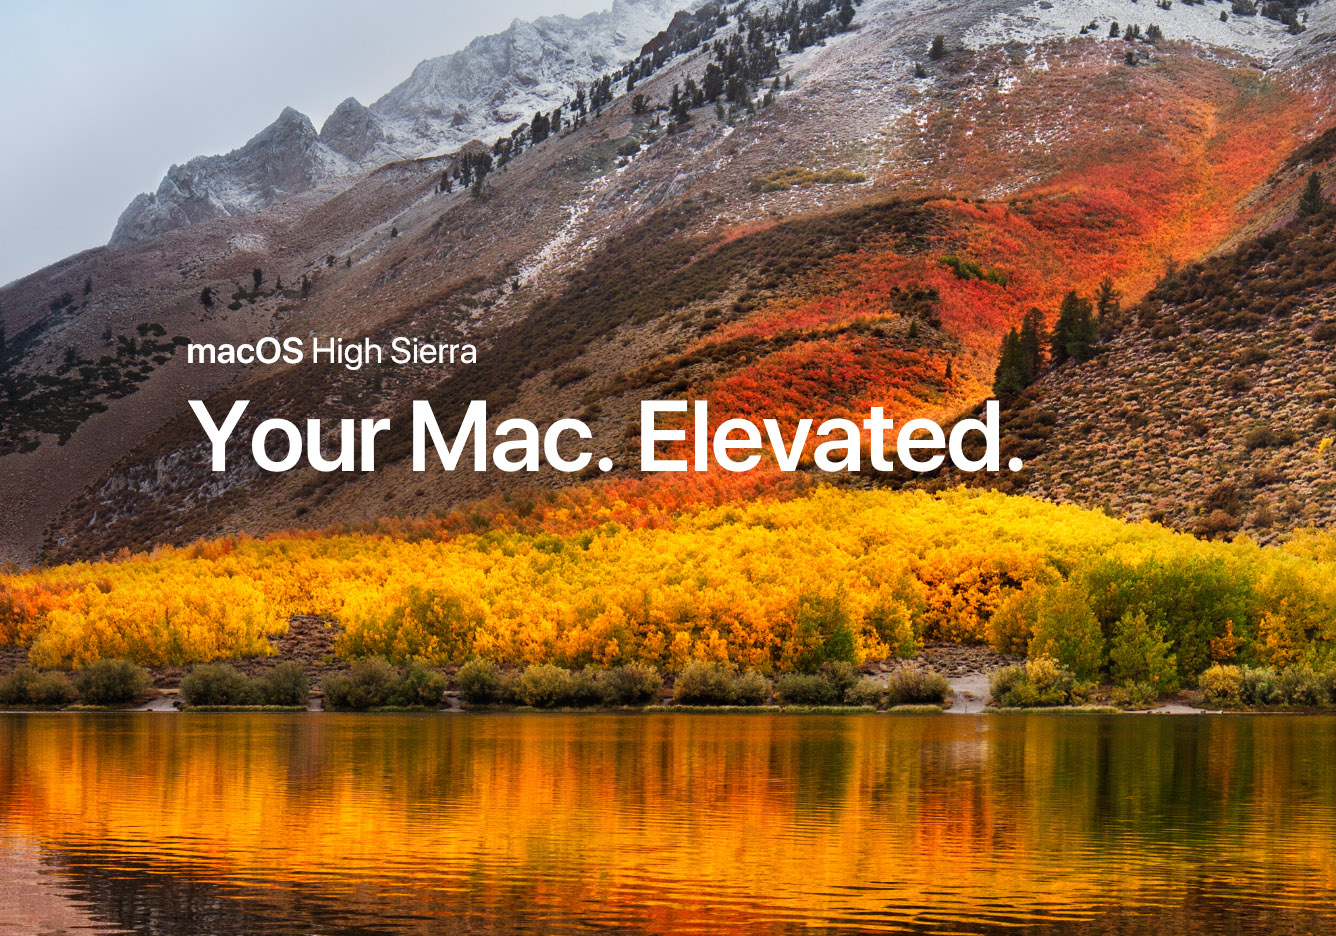 MacOS High Sierra kommt am 25. September